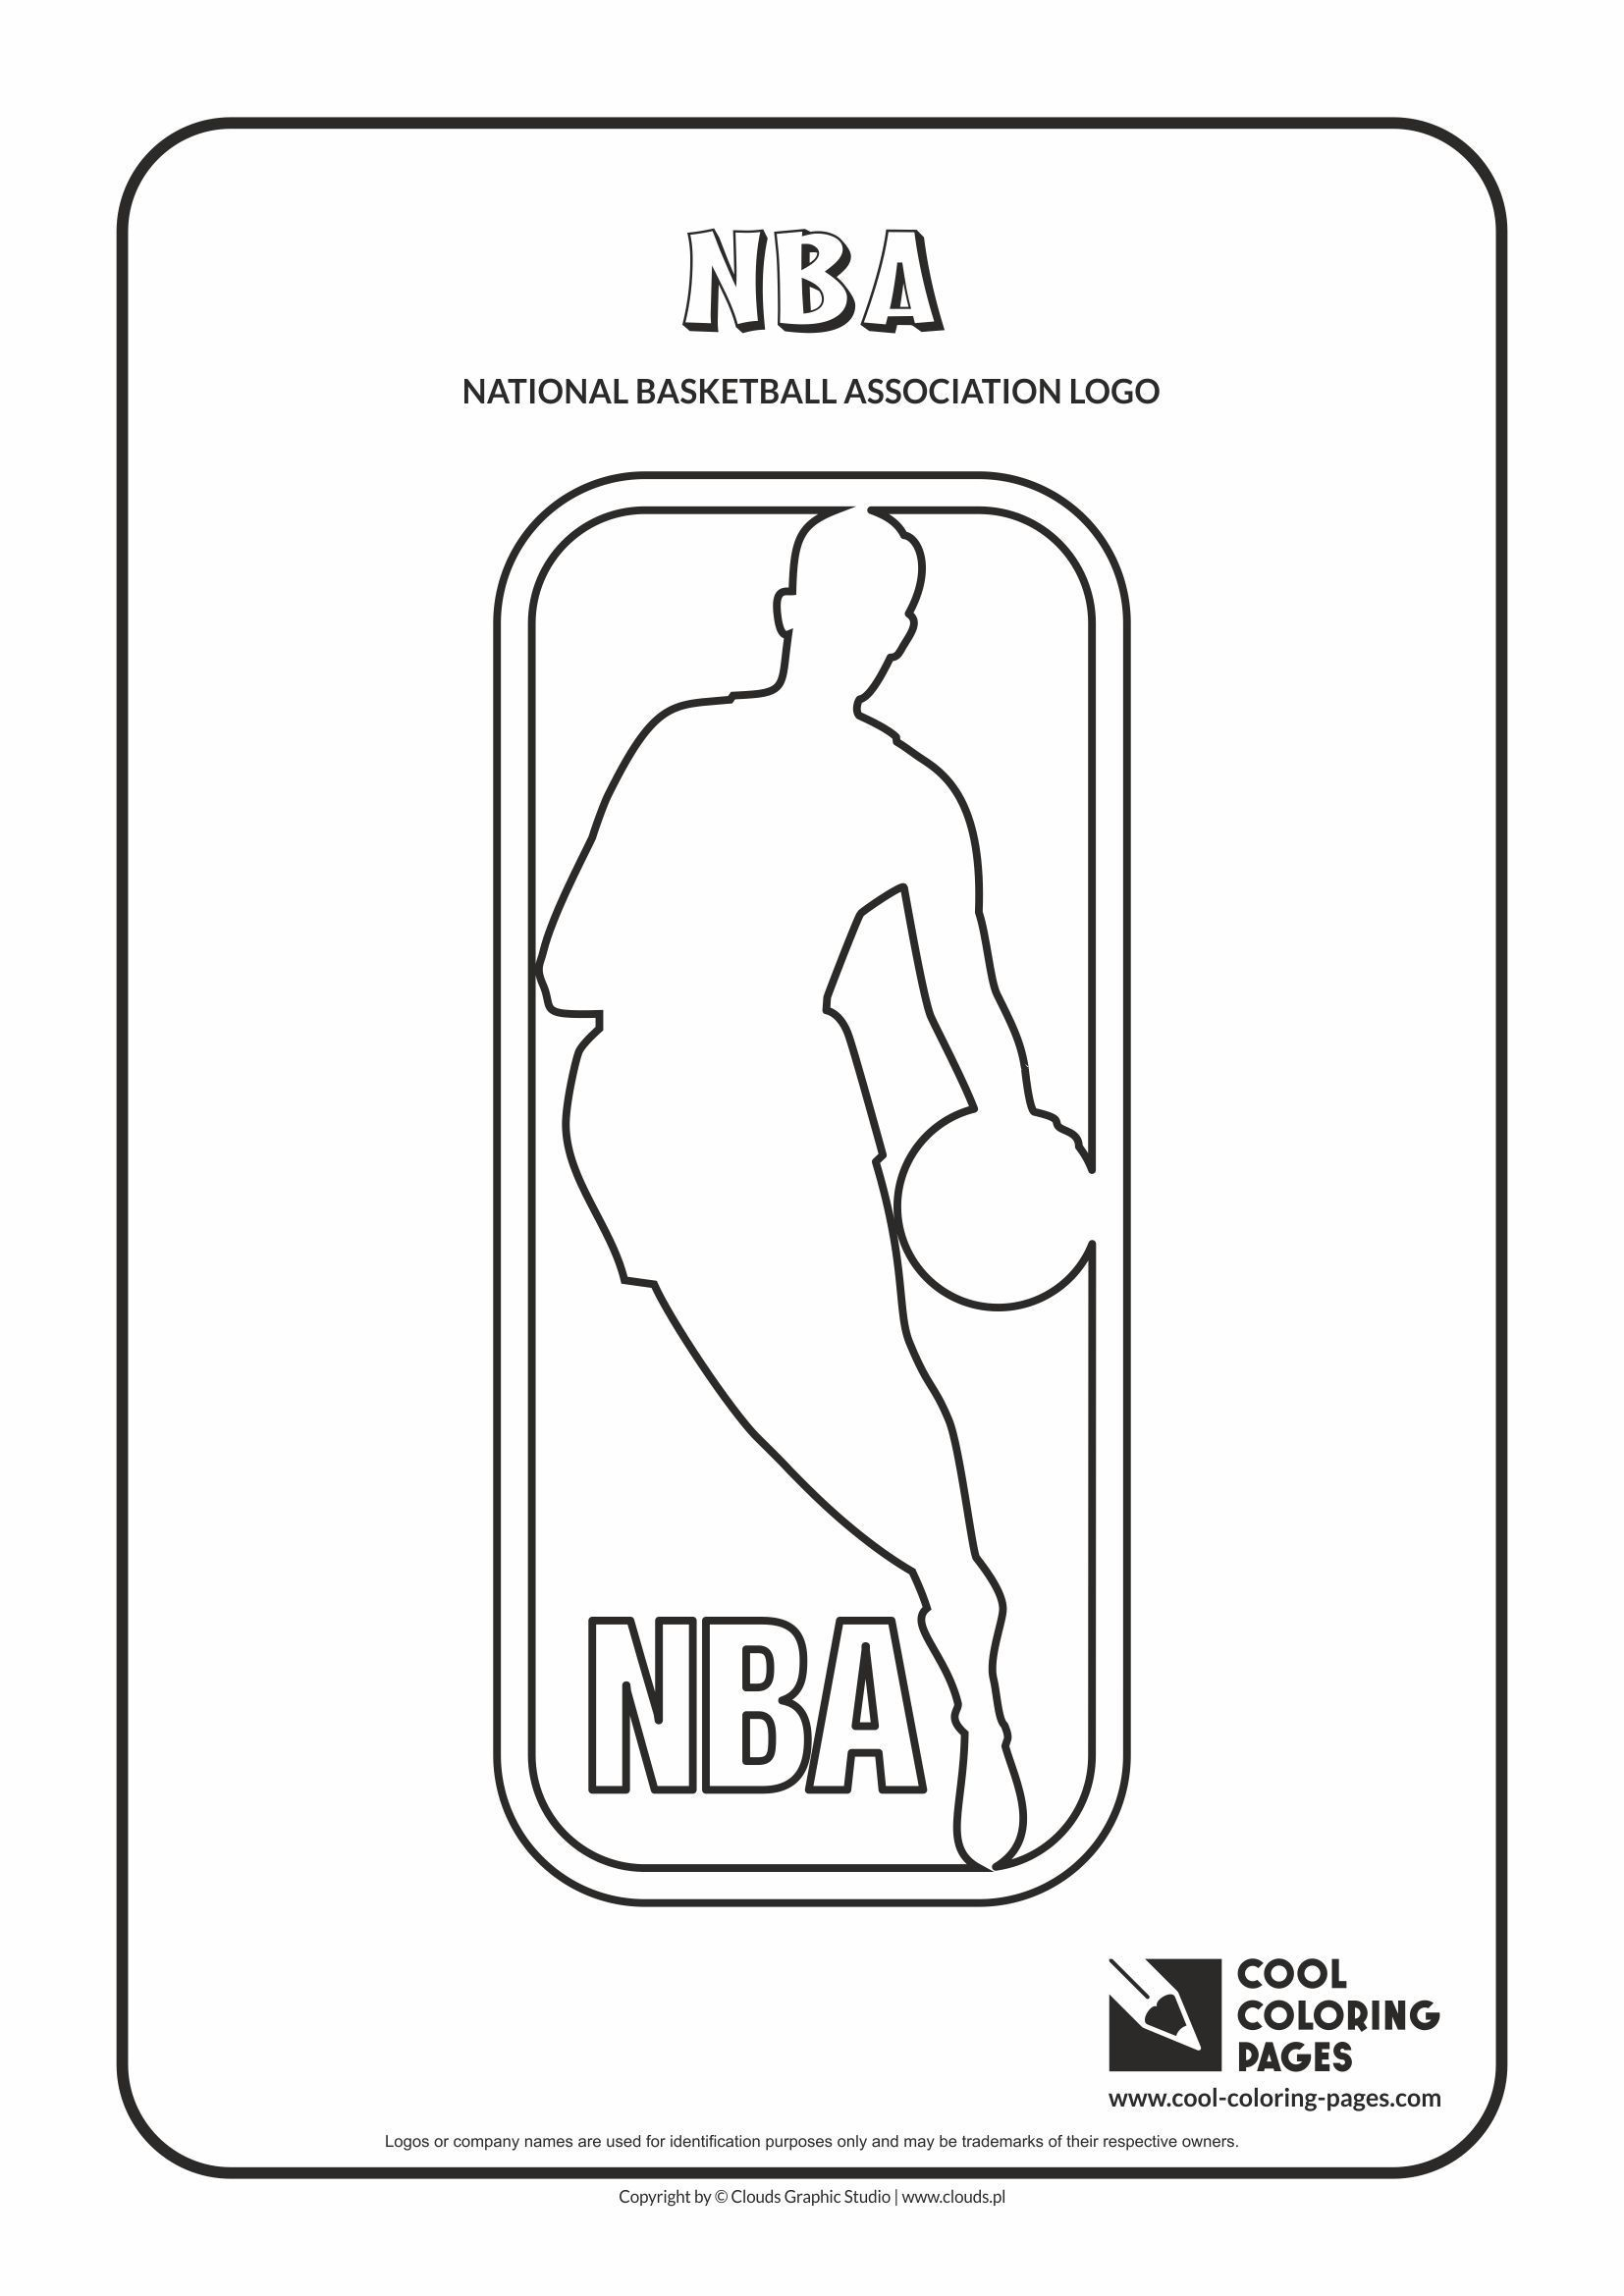 Cool Coloring Pages Nba Logo Coloring Pages National Cool Coloring Pages Nba Logo Coloring Pages